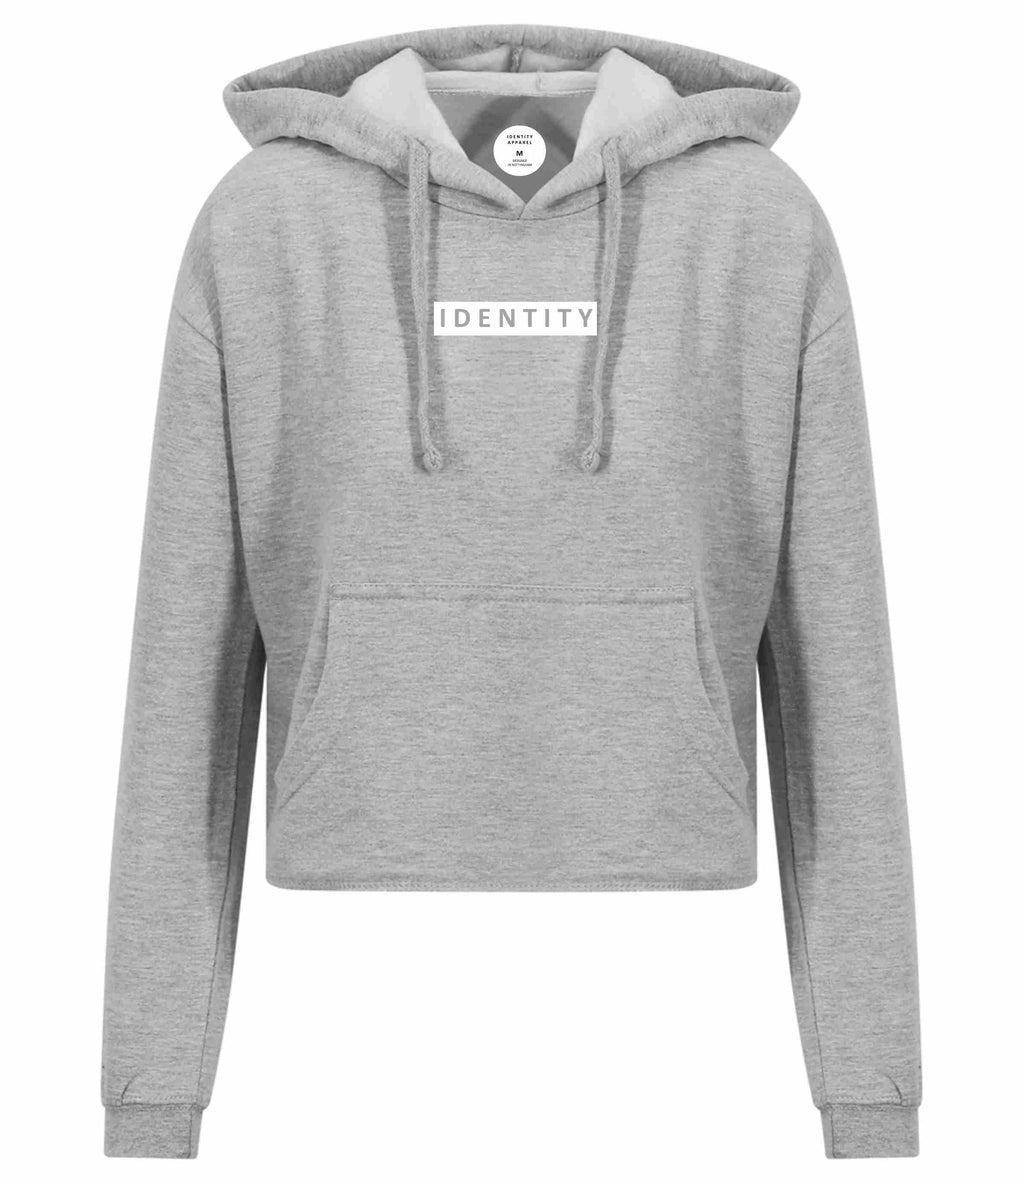 Womens Street Crop Hoodie (2 Colour Options)